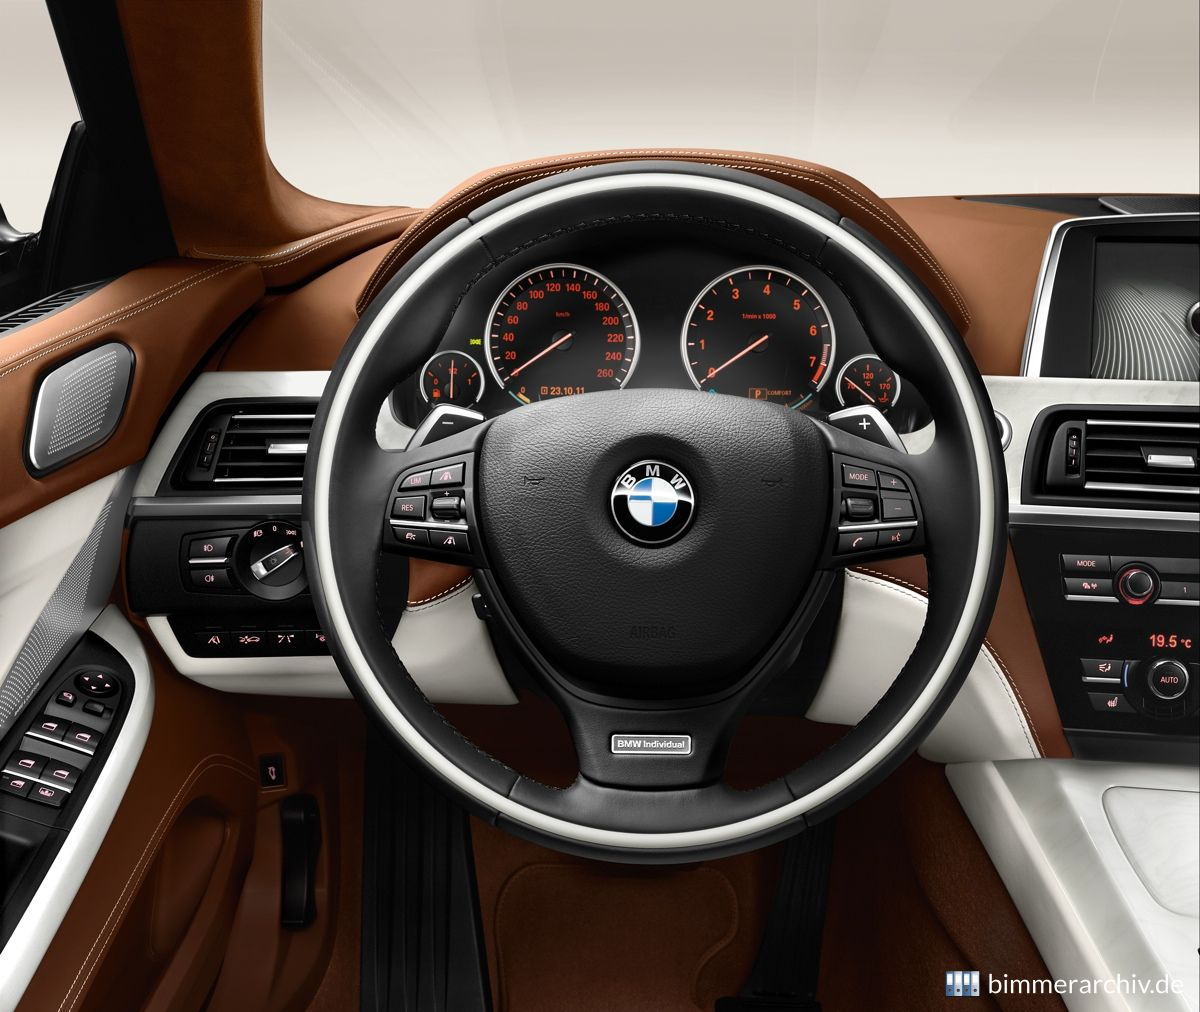 https://www.bimmerarchive.org/images/2989-235-bmw-640i-6-series-f06-gran-coupe@2x.jpg